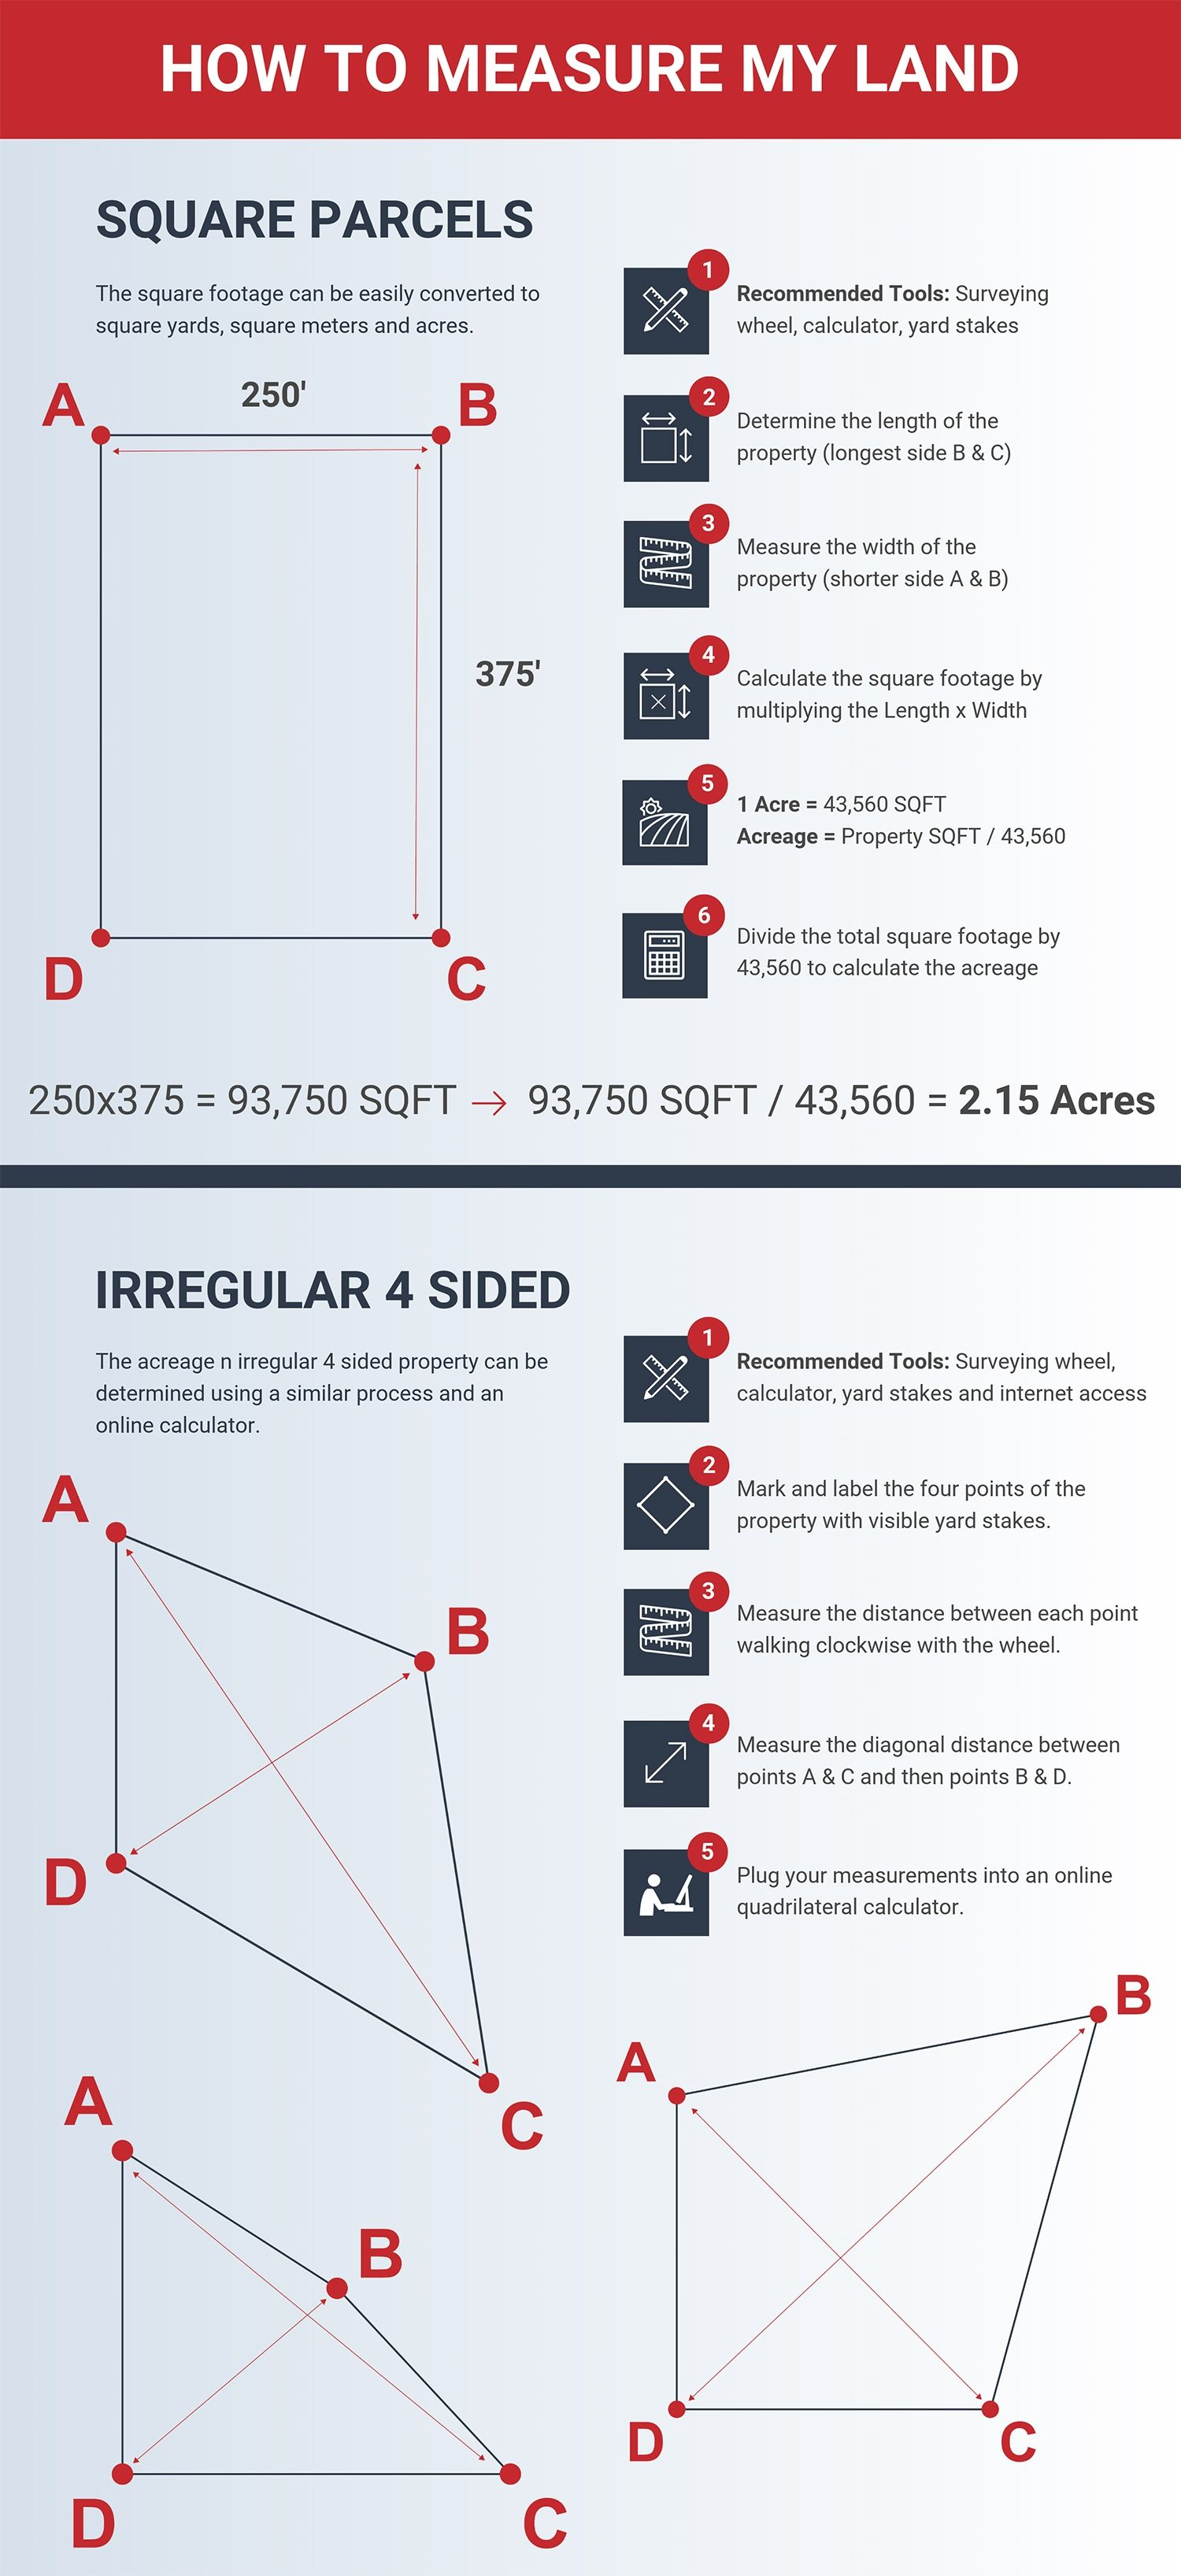 How To Measure Your Land An Infographic By General Steel Infographic General Steel Measurements